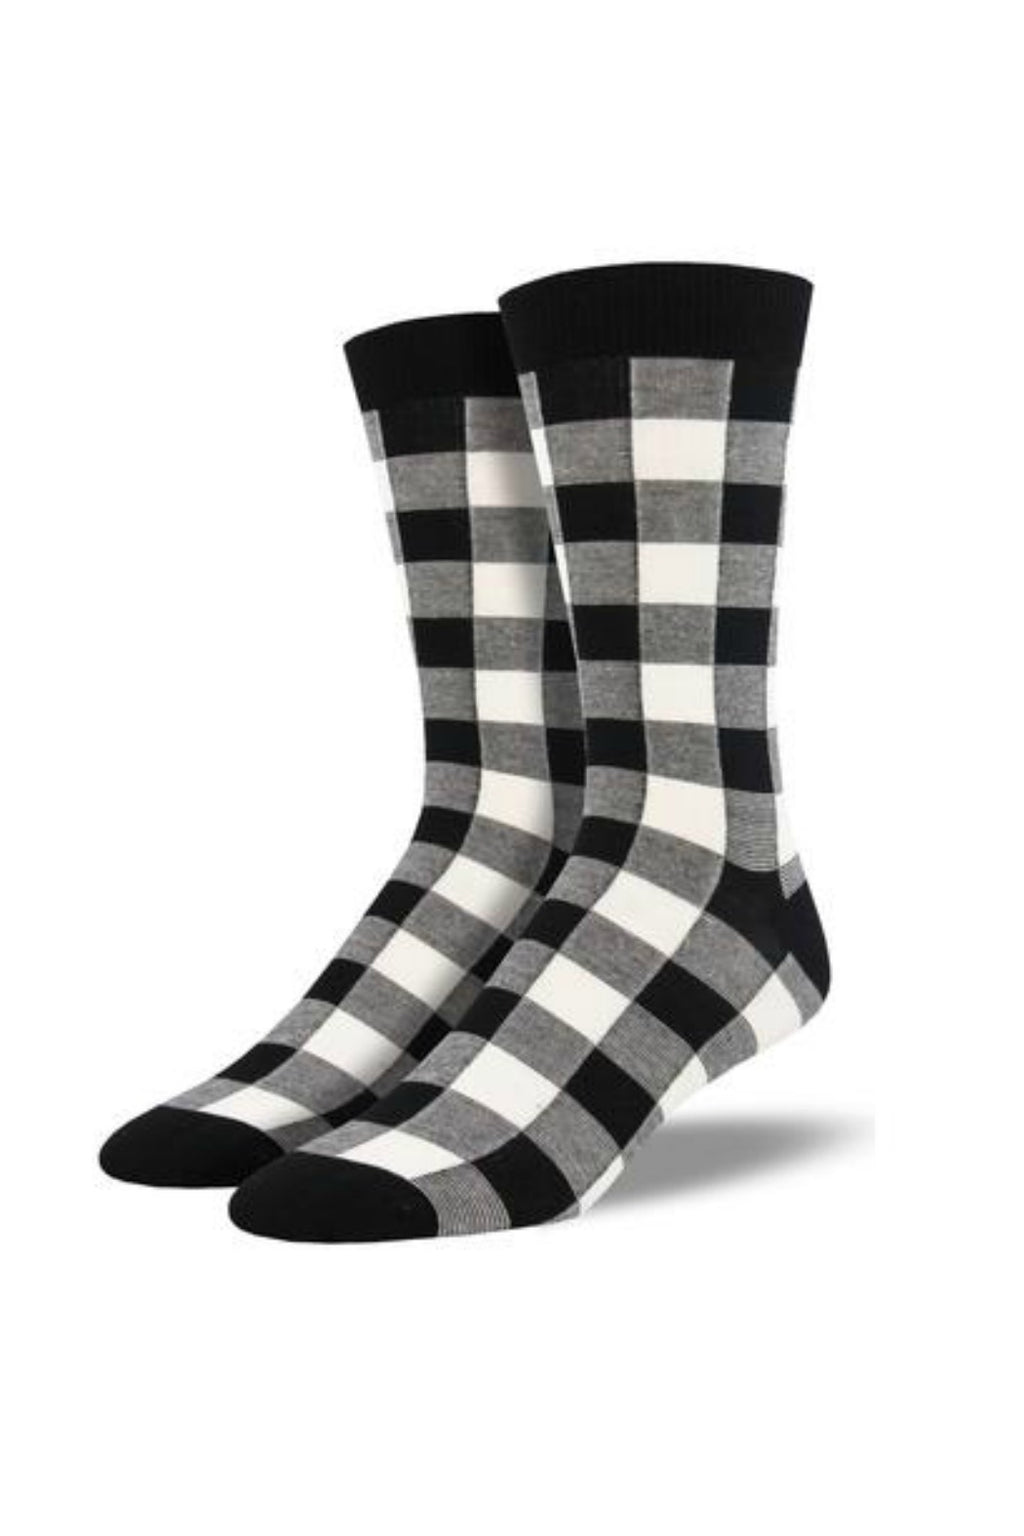 Socksmith Men's Bamboo Buffalo Plaid Socks - White